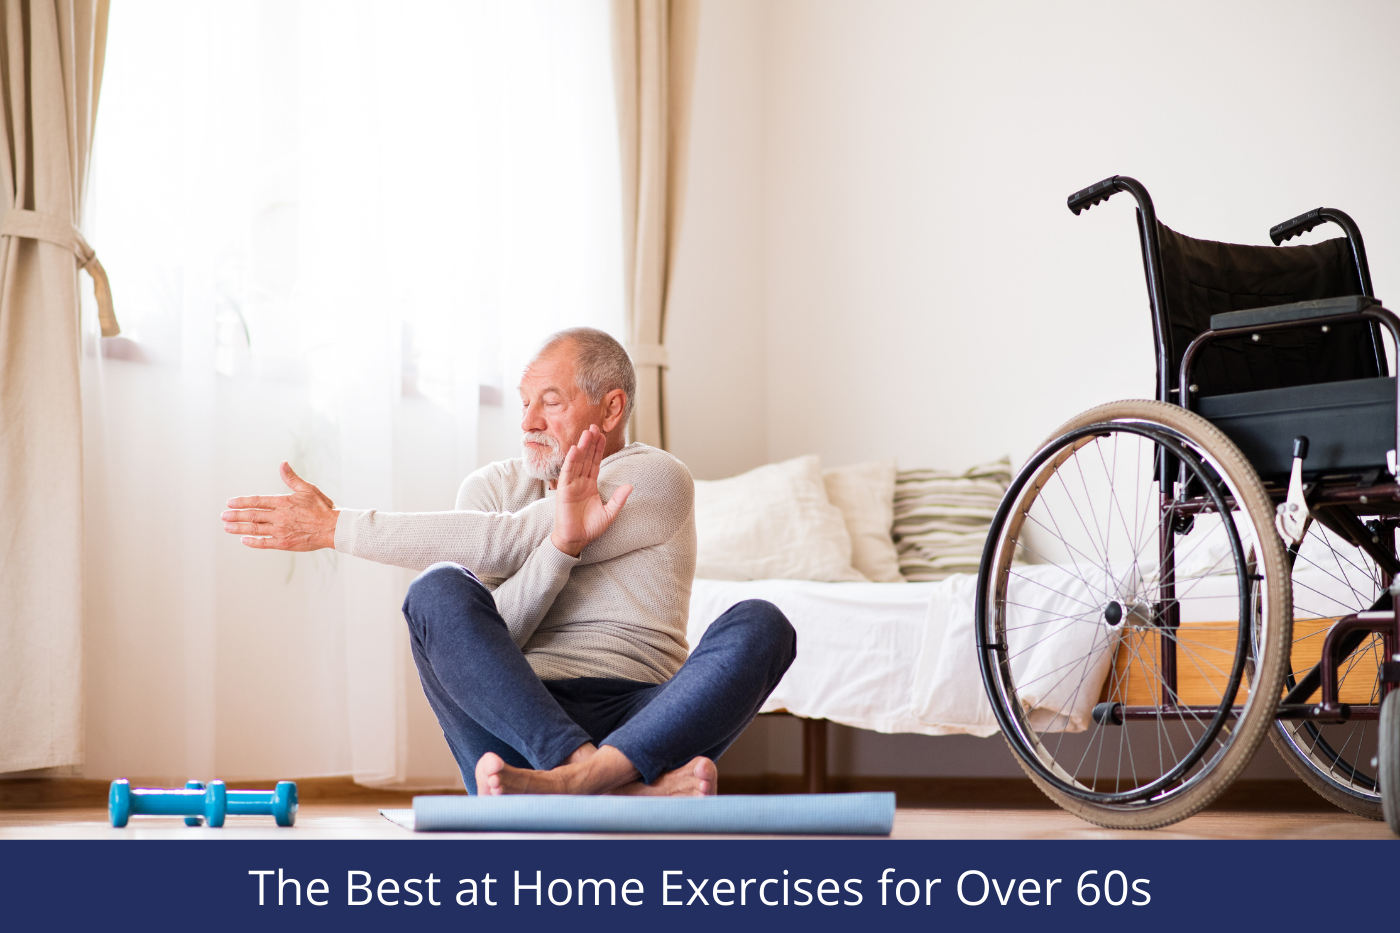 Home Exercise Over 60s